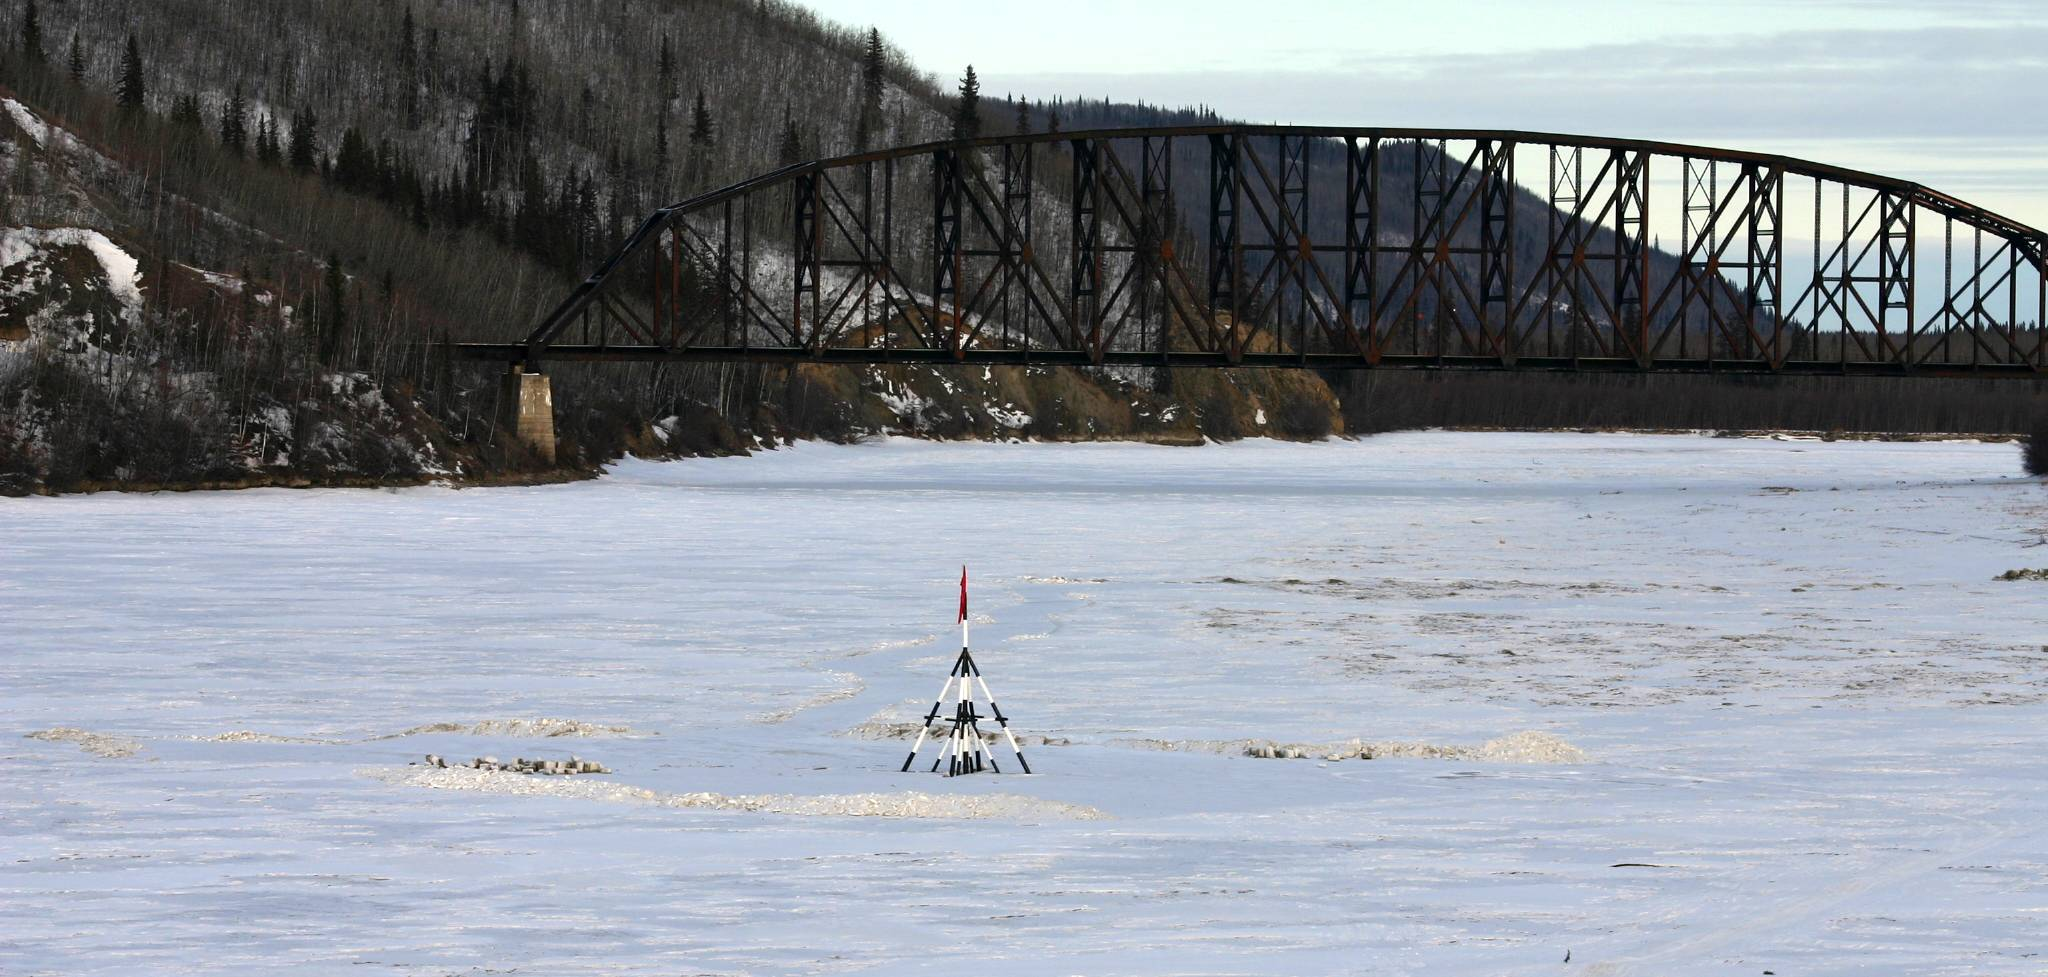 The highway crosses the Tanana River near the tiny town of Nenana, home to the Nenana Ice Classic. Every year a state-wide contest is held to see who can guess the moment the ice breaks for the spring. The winner gets thousands; in 2010, the grand prize was $279,030. (Wikimedia Commons)